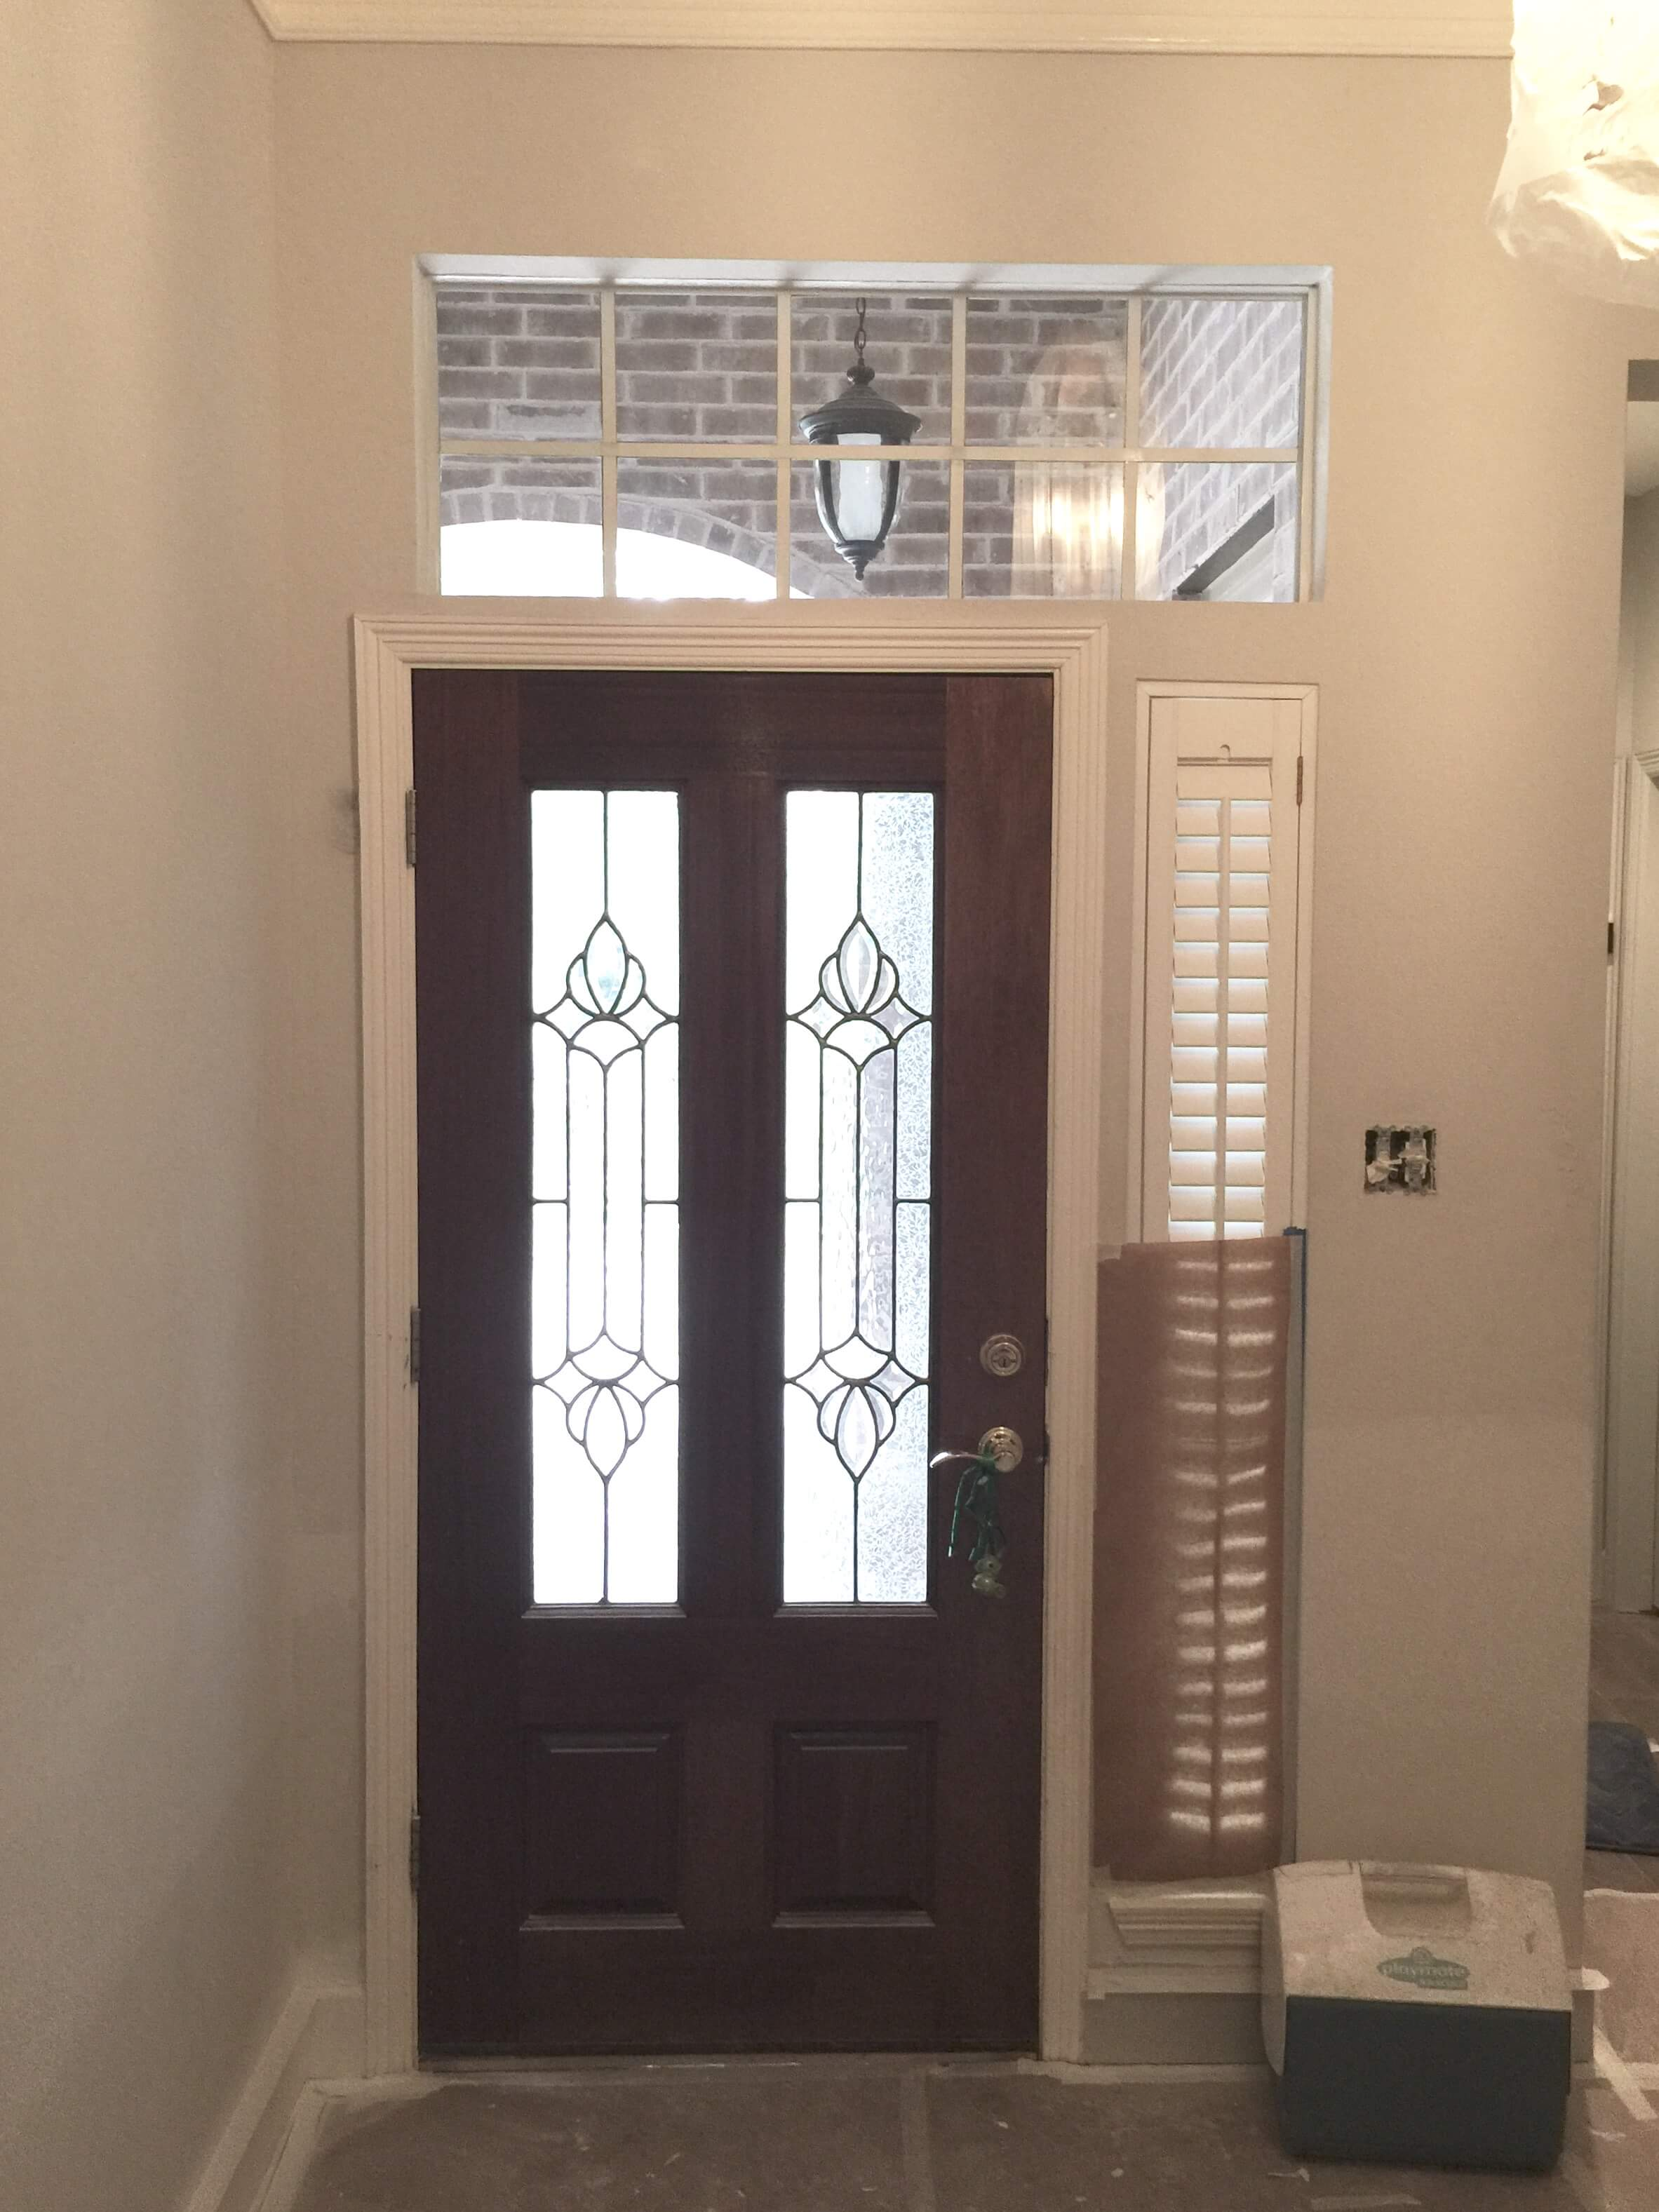 Before - entry door with minimal mouldings around openings. #mouldings #interiordesigntips